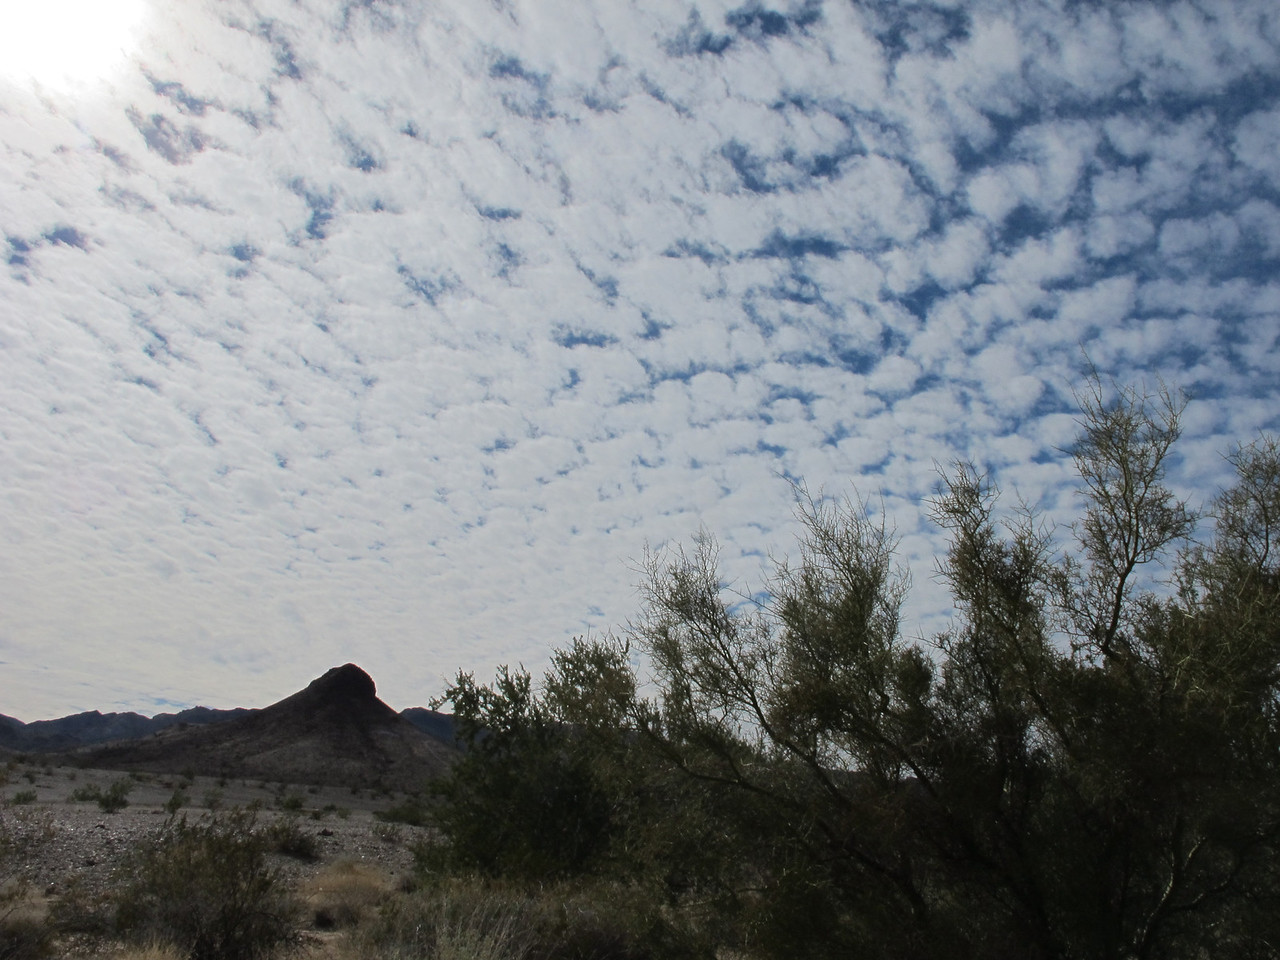 The first couple of days I was in Q, the clouds were plentiful. On this day, they resembled cotton balls.